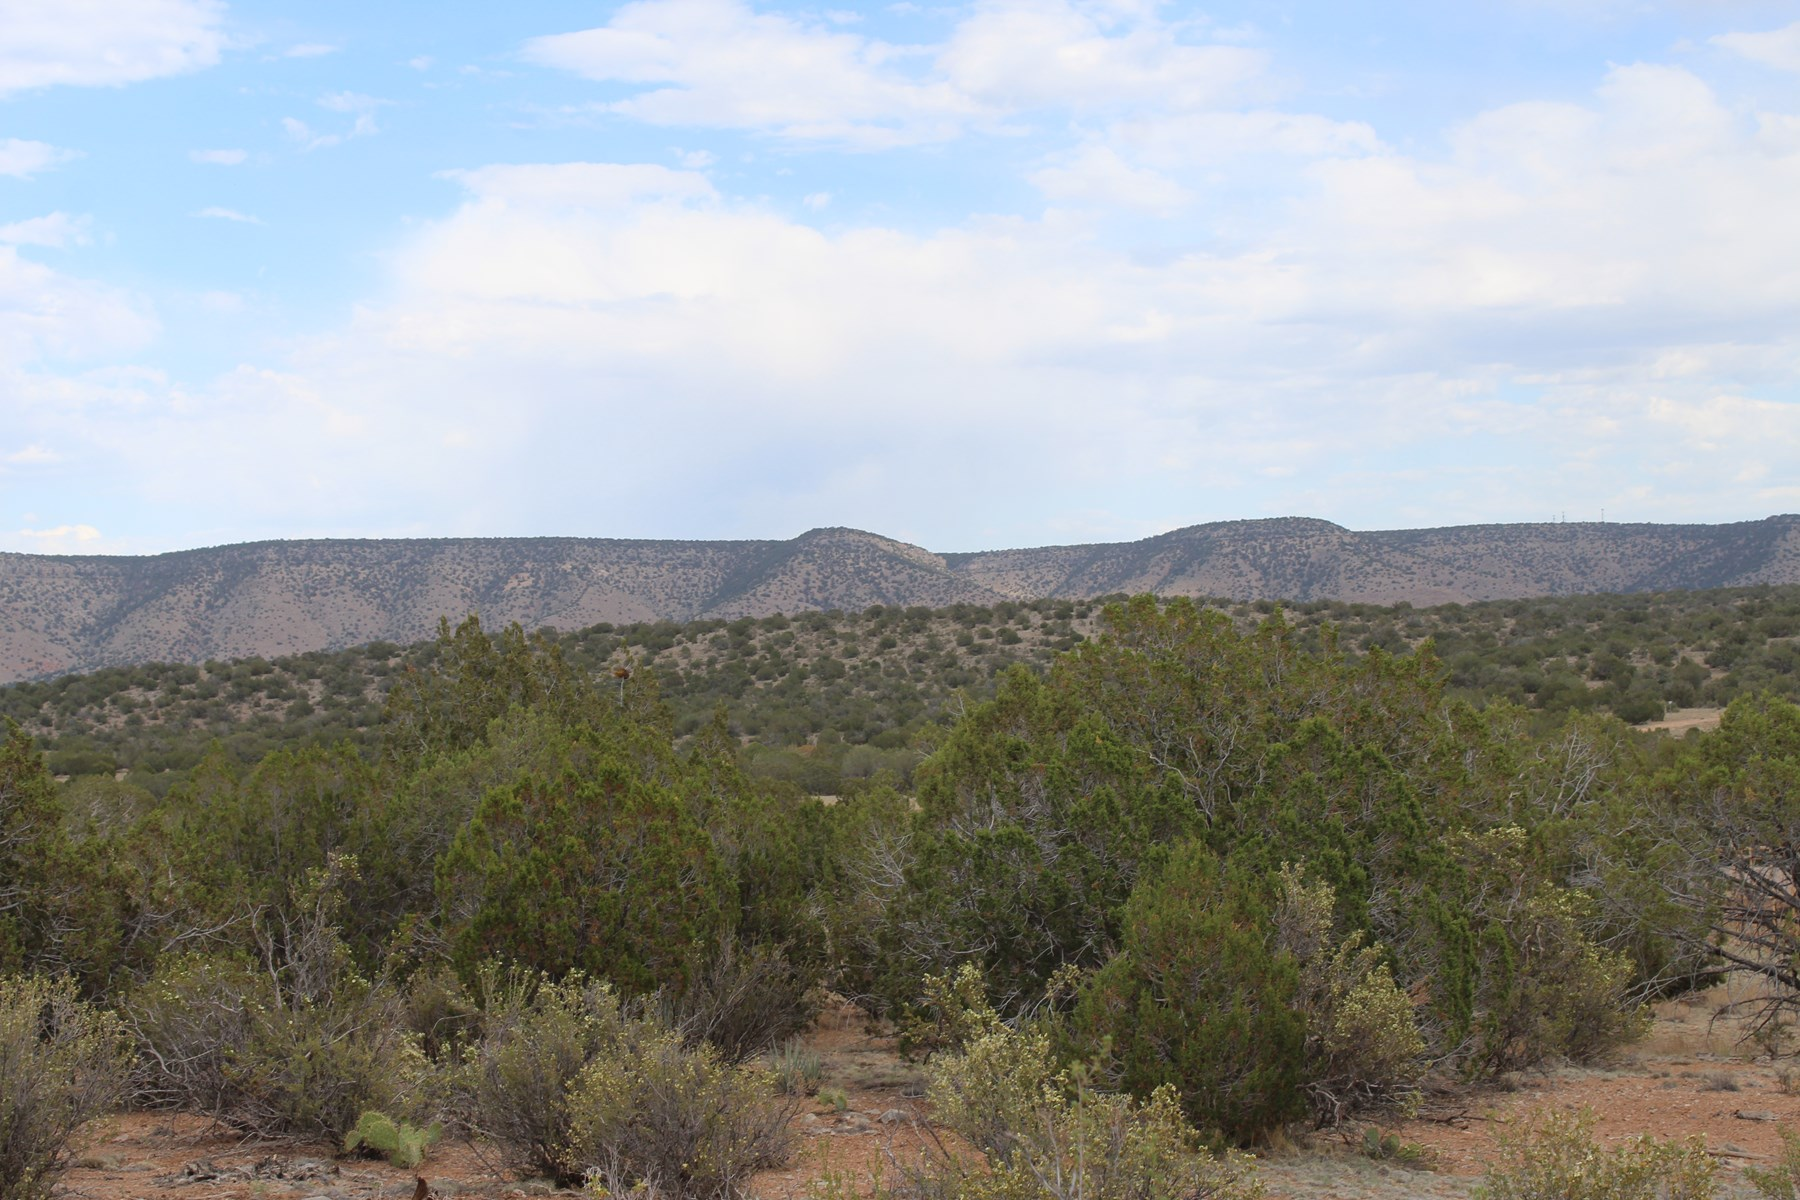 Land Borders State Trust Land for sale in Seligman AZ